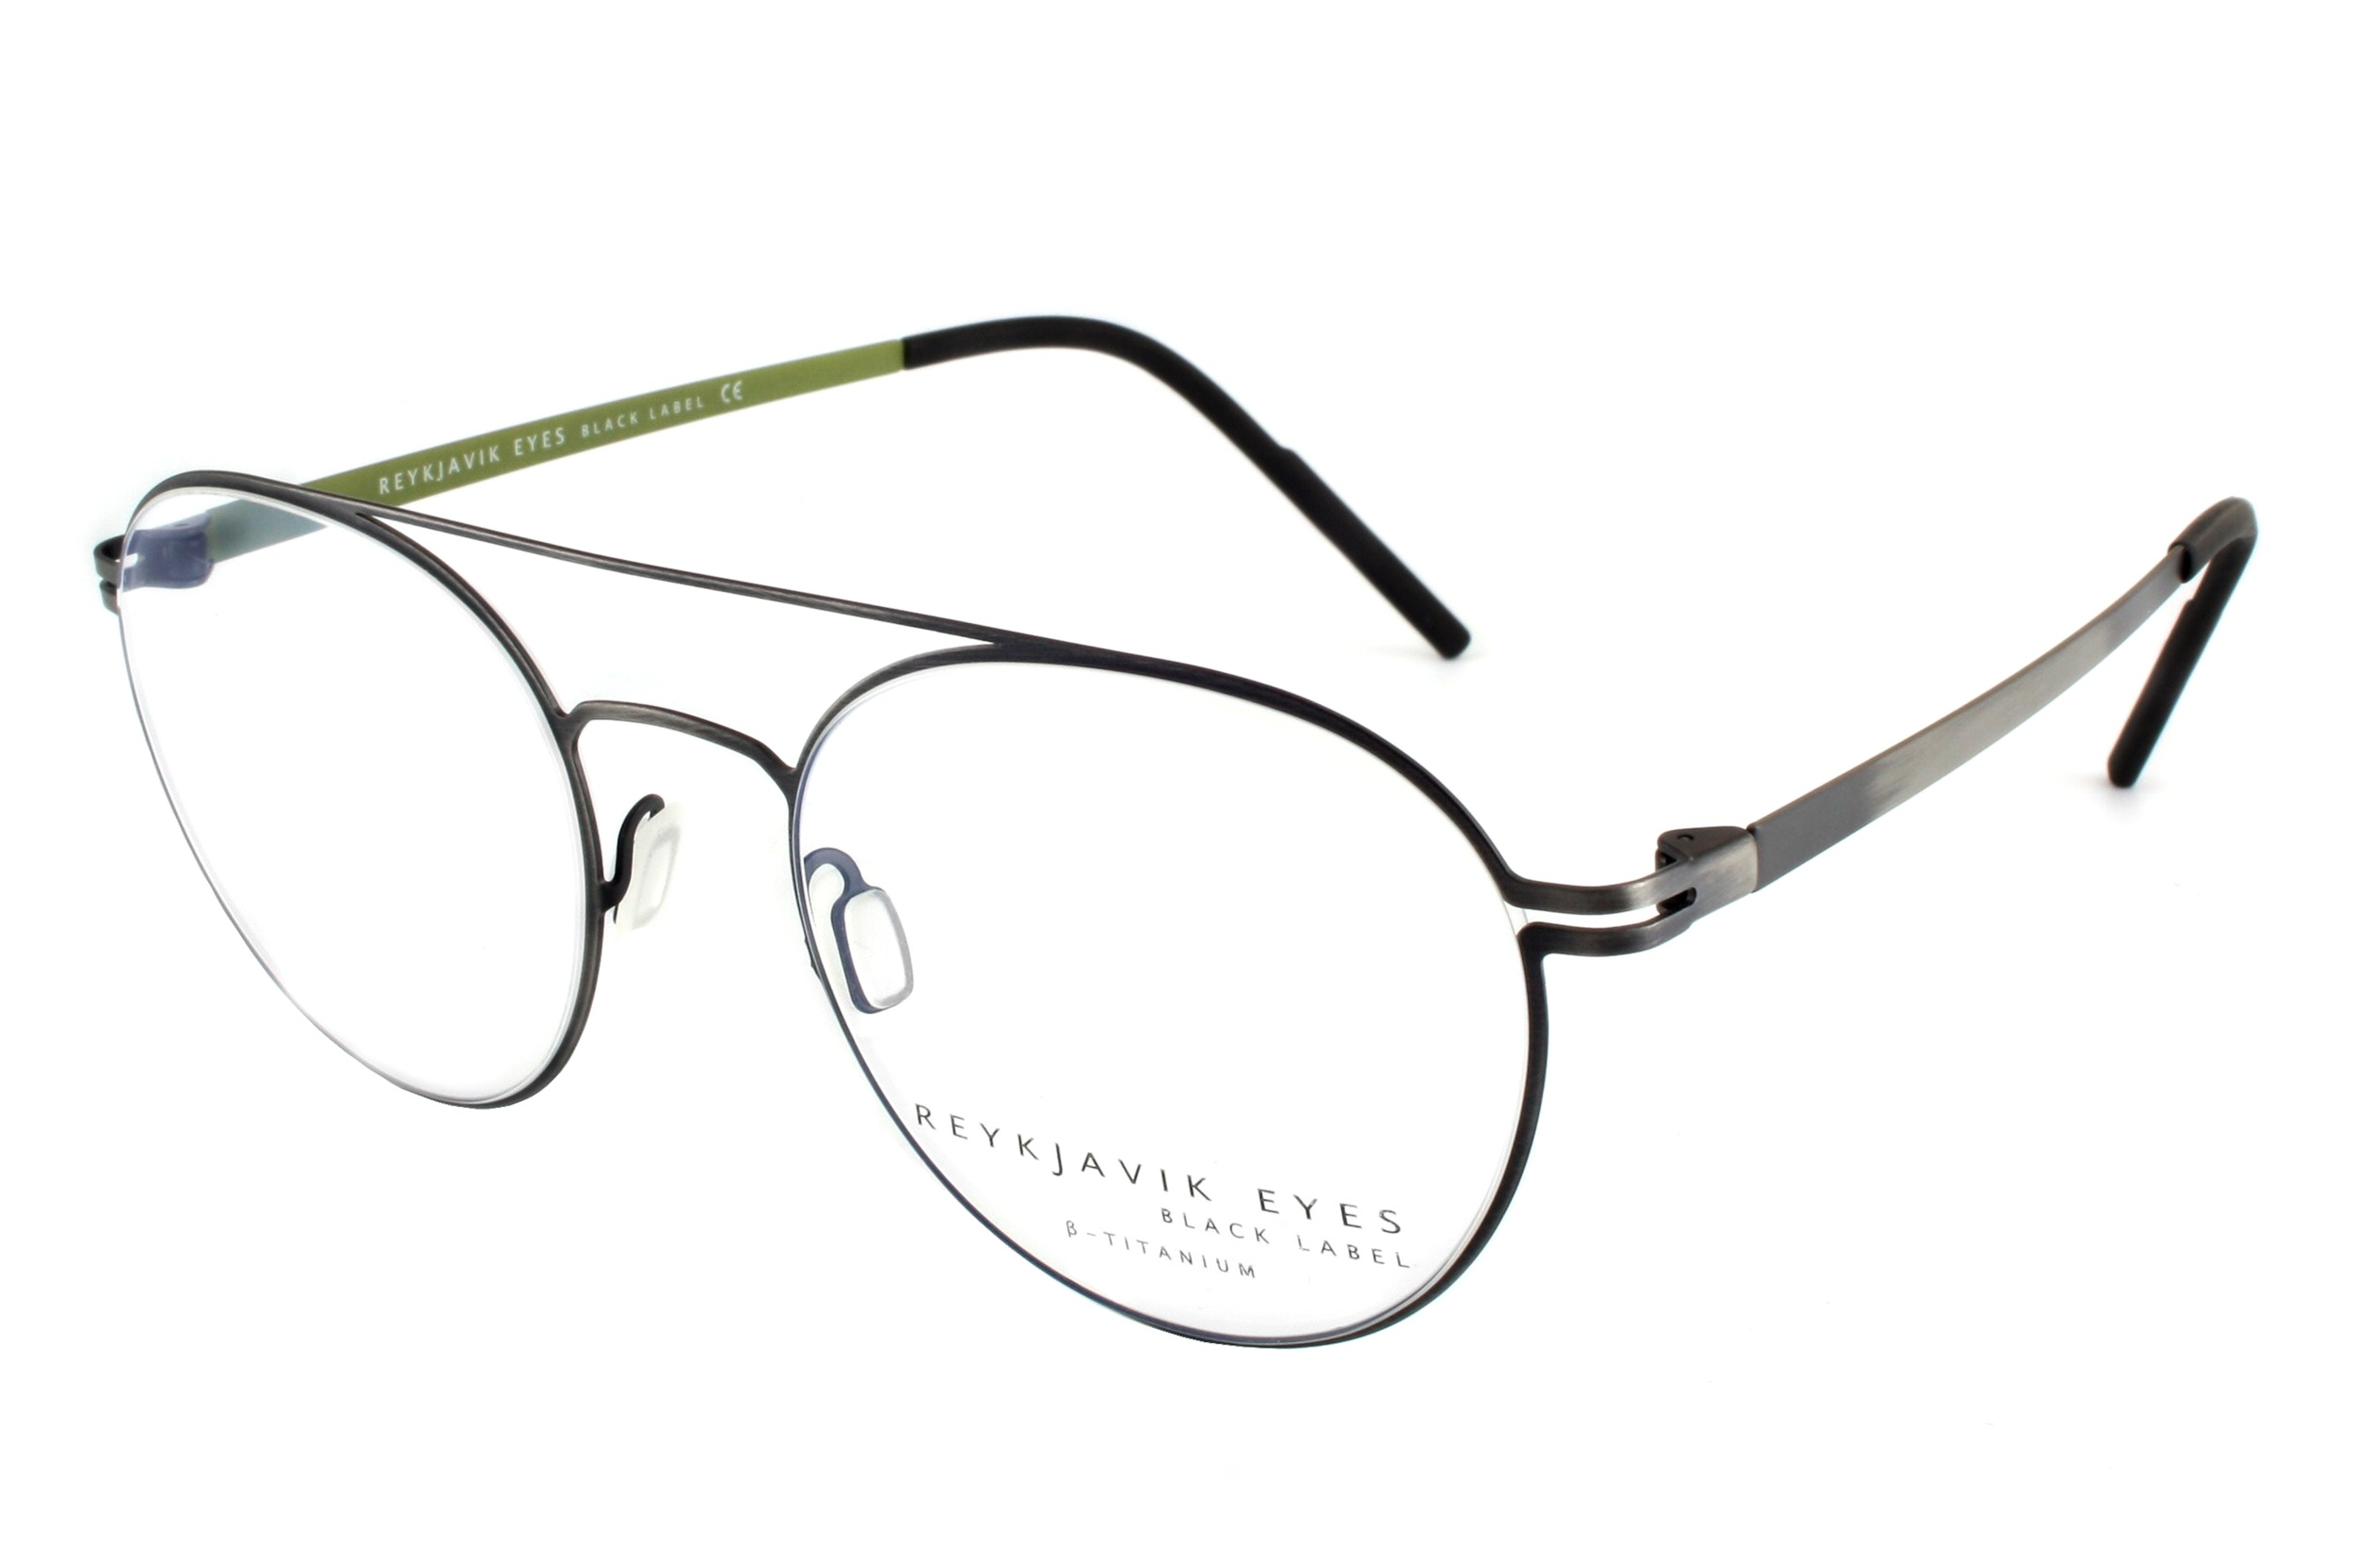 Start off the year with a new sleek and stylish look with the lightweight titanium frames from Reykjavik Eyes.